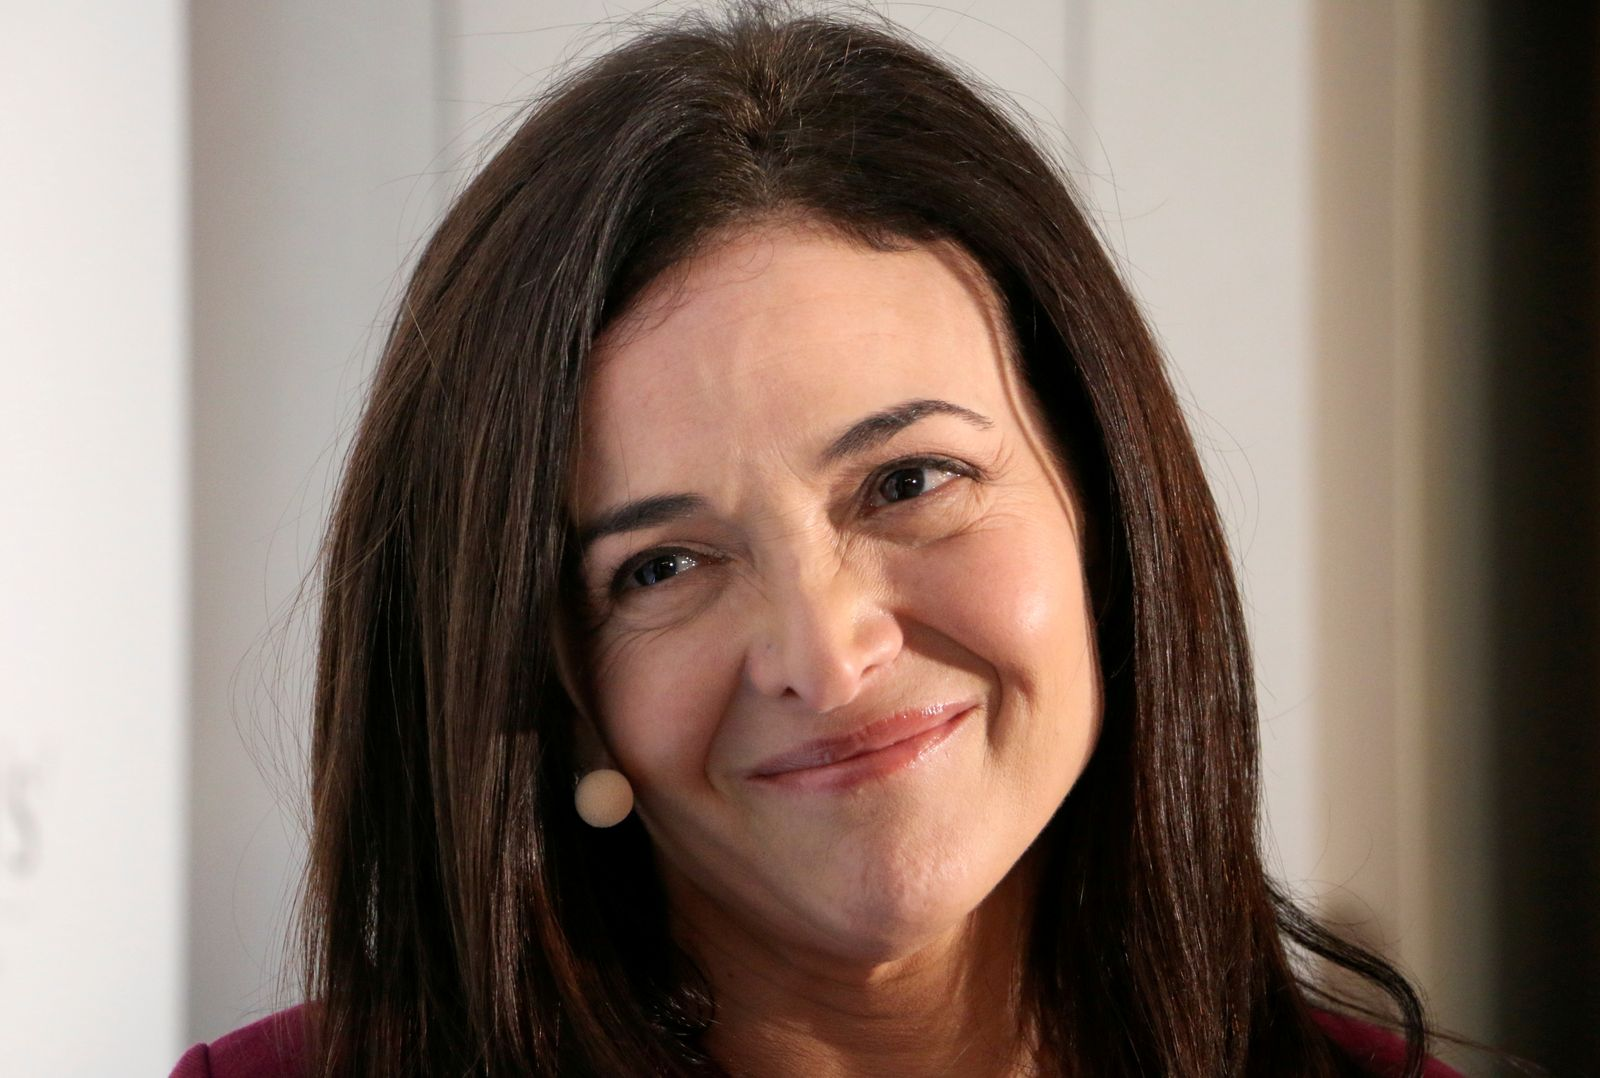 FILE PHOTO: Facebook Chief Operating Officer Sandberg attends an event on the sidelines of the World Economic Forum in Davos